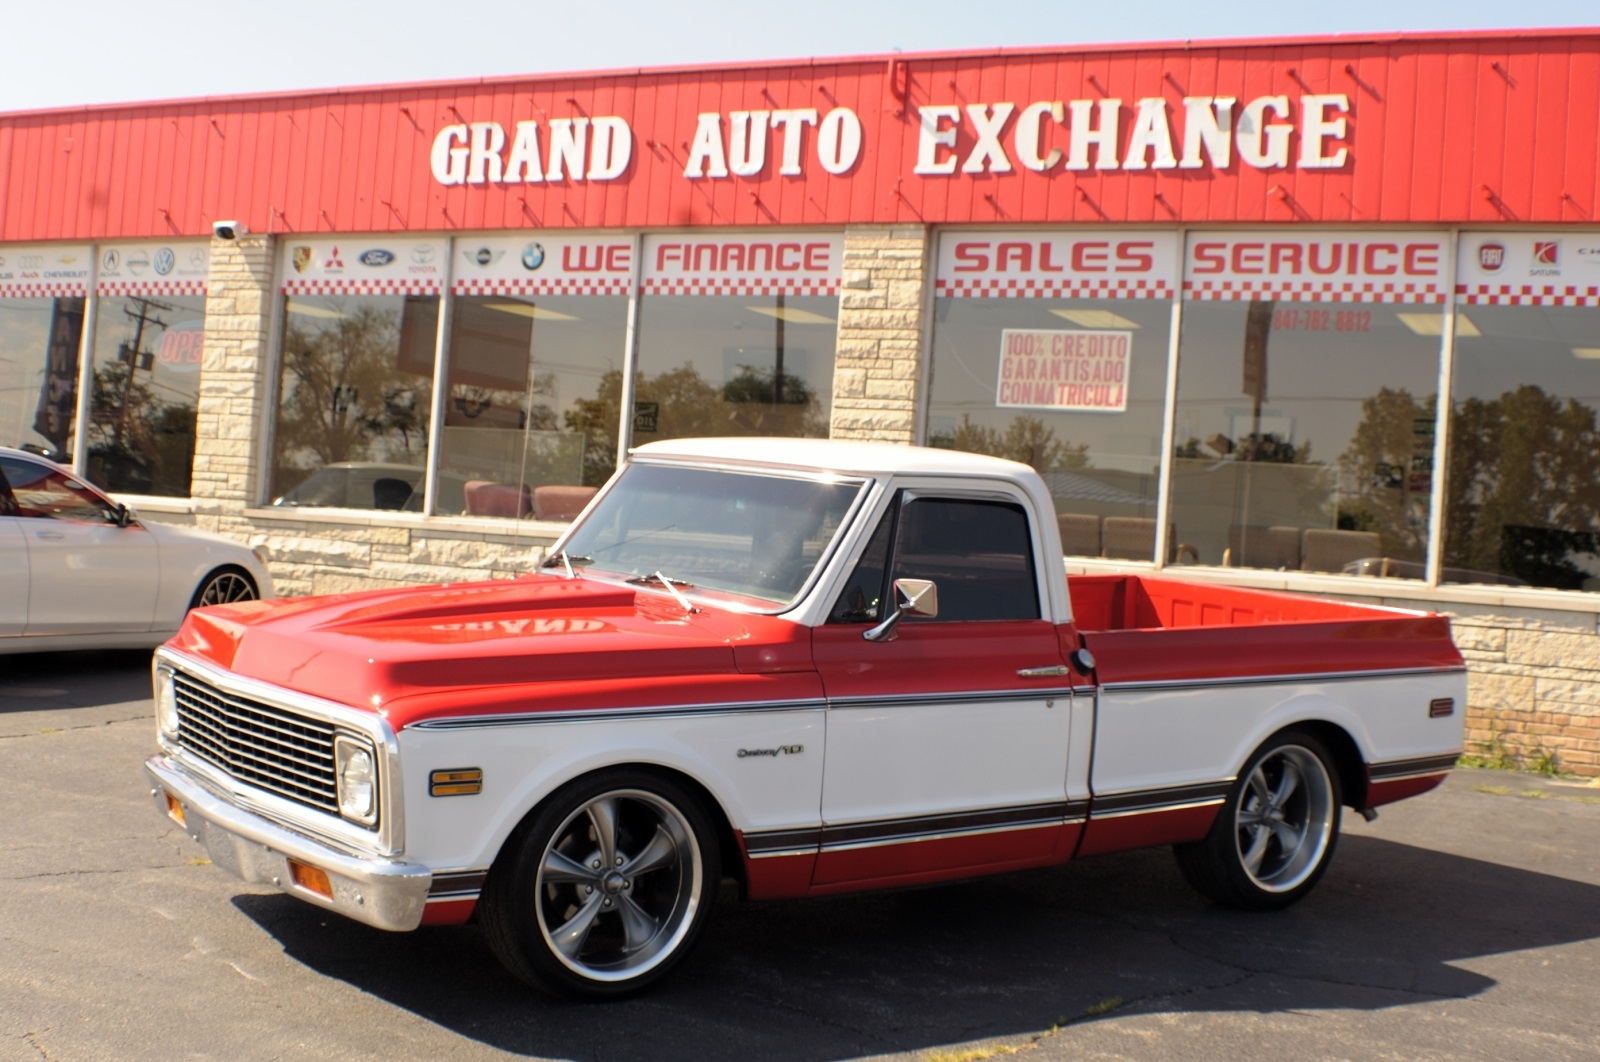 1969 GMC C10 Stroker Motor Used 4x2 Used Truck Sale Antioch Zion Waukegan Lake County Illinois